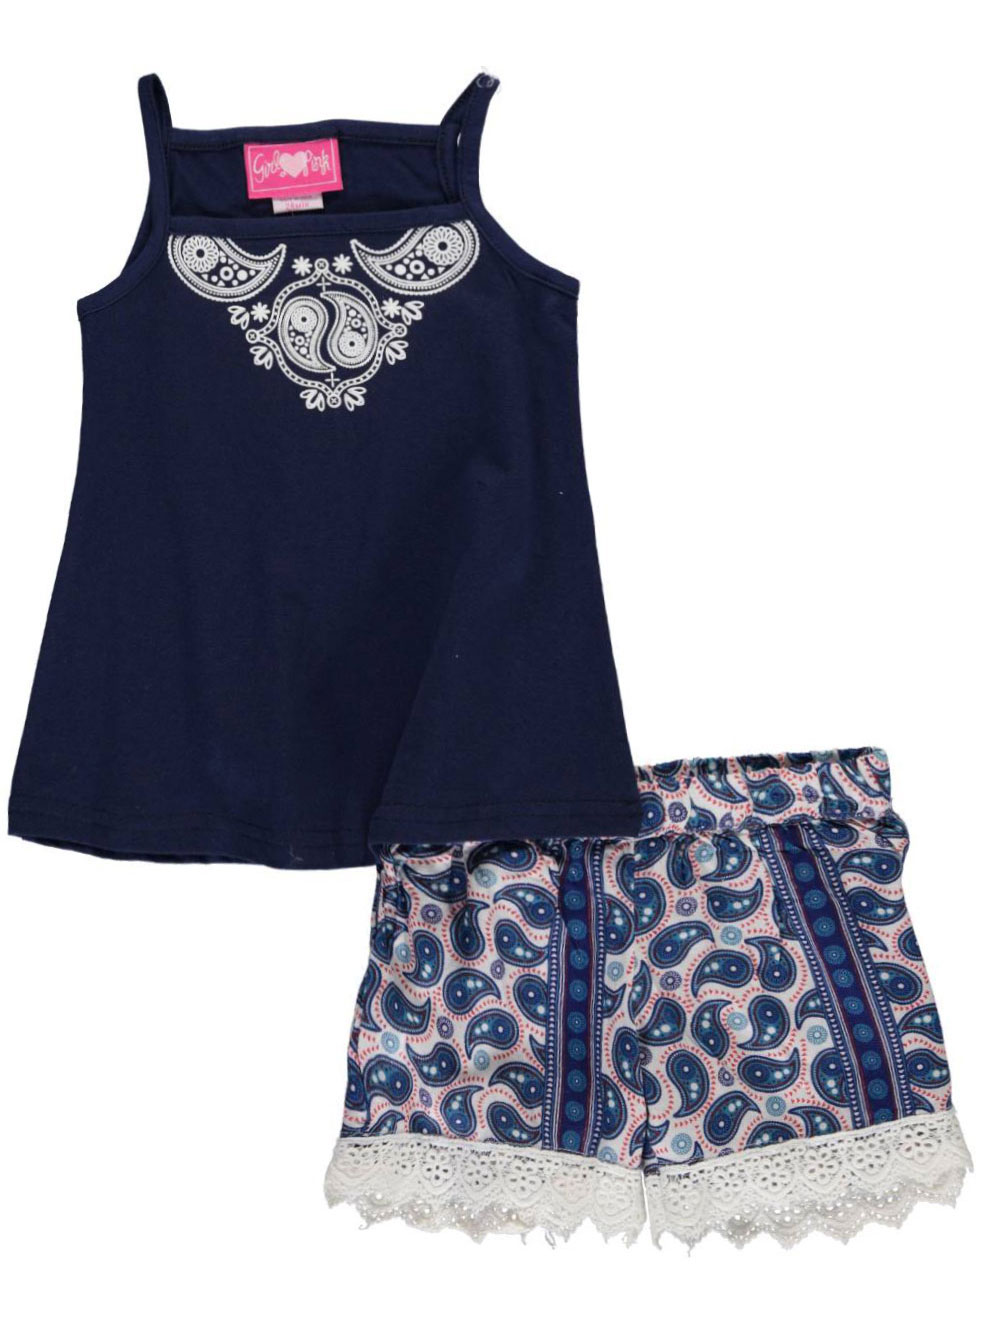 Image of Girls Luv Pink Baby Girls Paisley Swirl 2Piece Outfit  navy 18 months